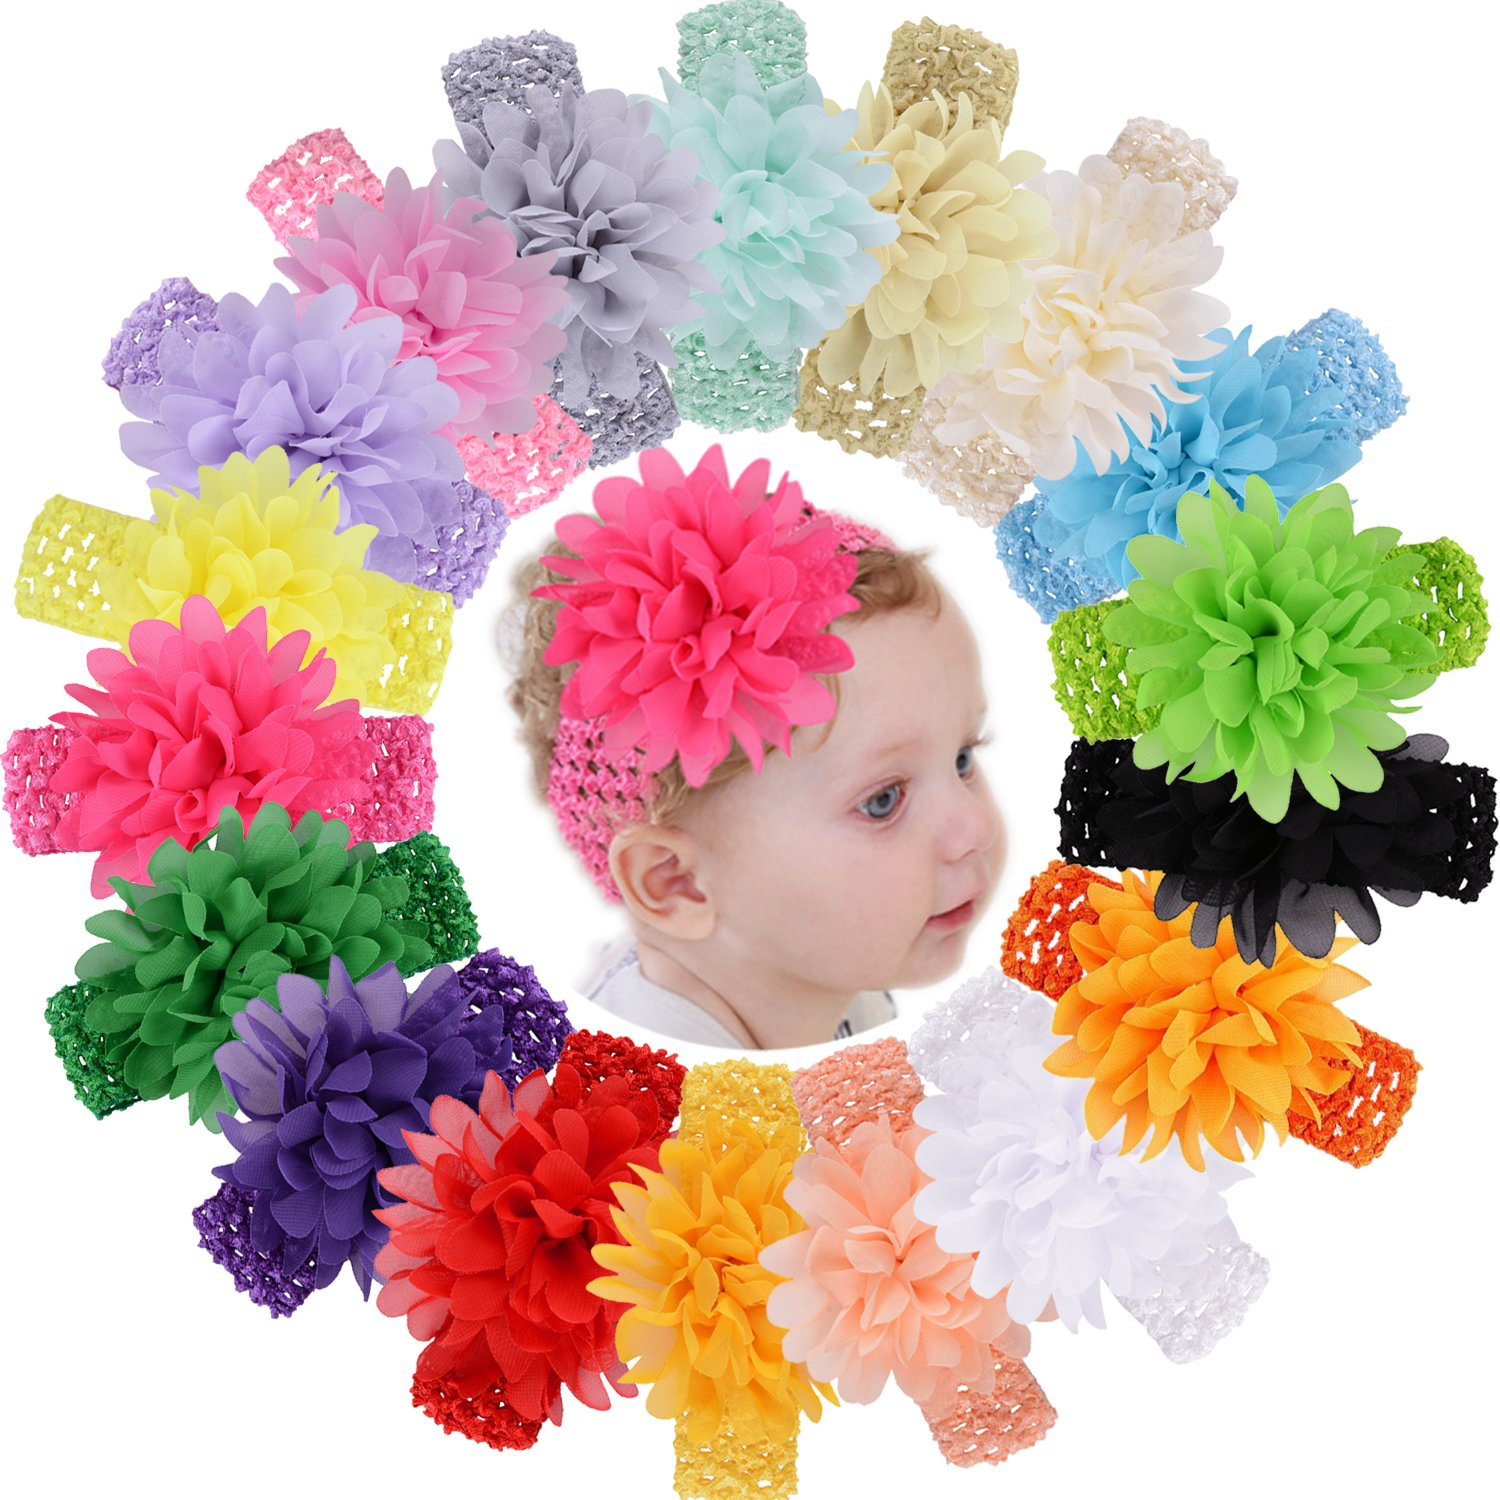 18pcs Baby Girls Headbands Chiffon Flower Soft Strecth Hair Band Hair Accessories for Baby Girls Newborns Infants Toddlers and Kids WillingT